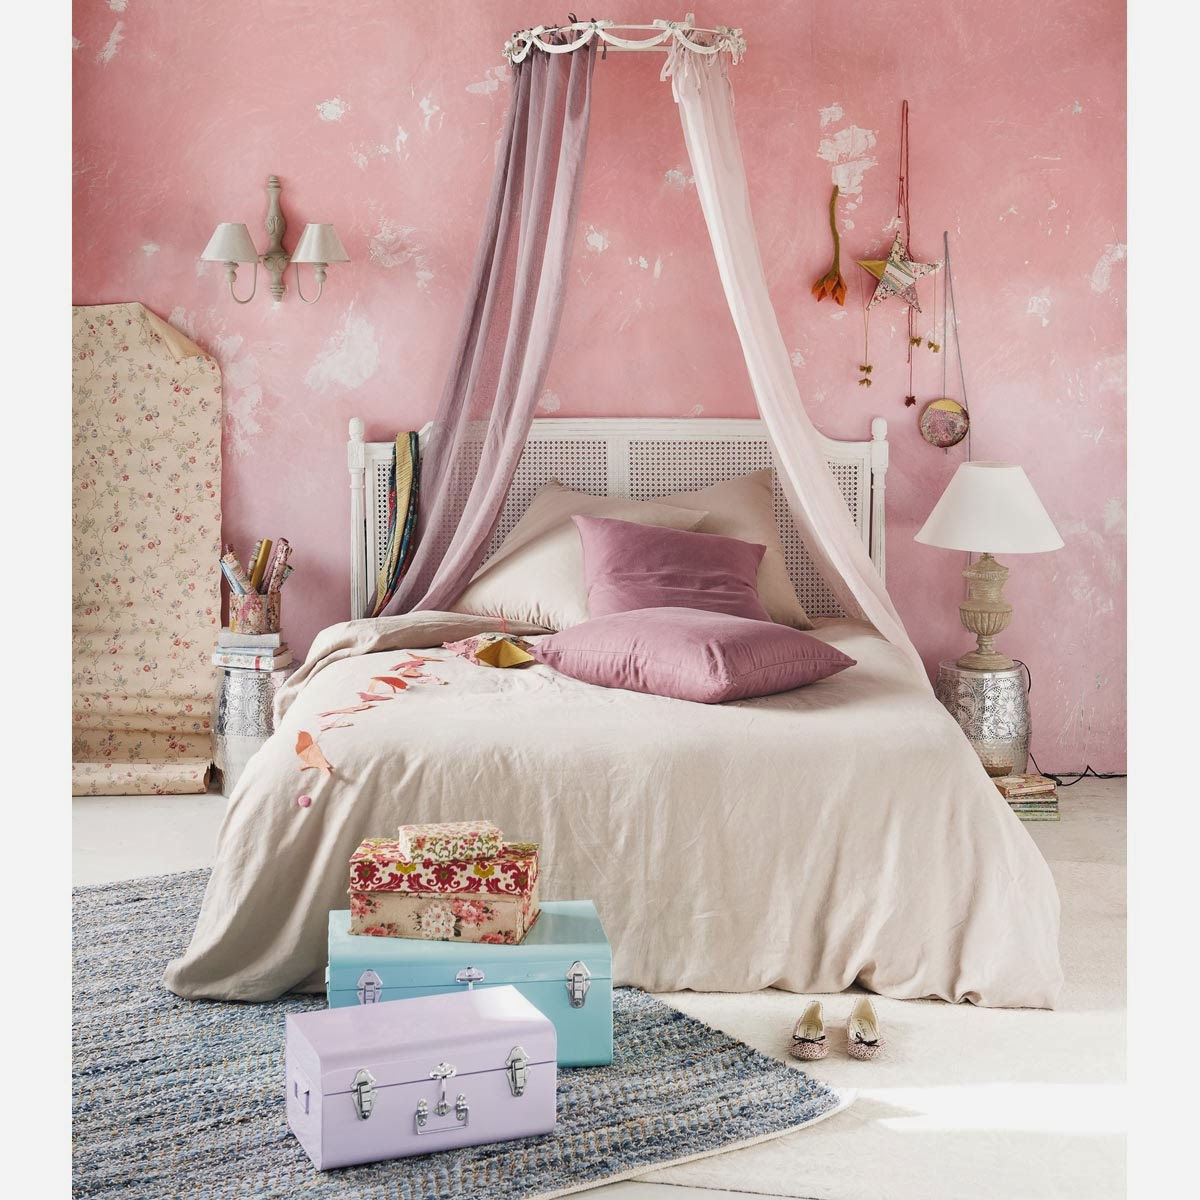 Tende shabby camera da letto : tende shabby per camera da letto ...